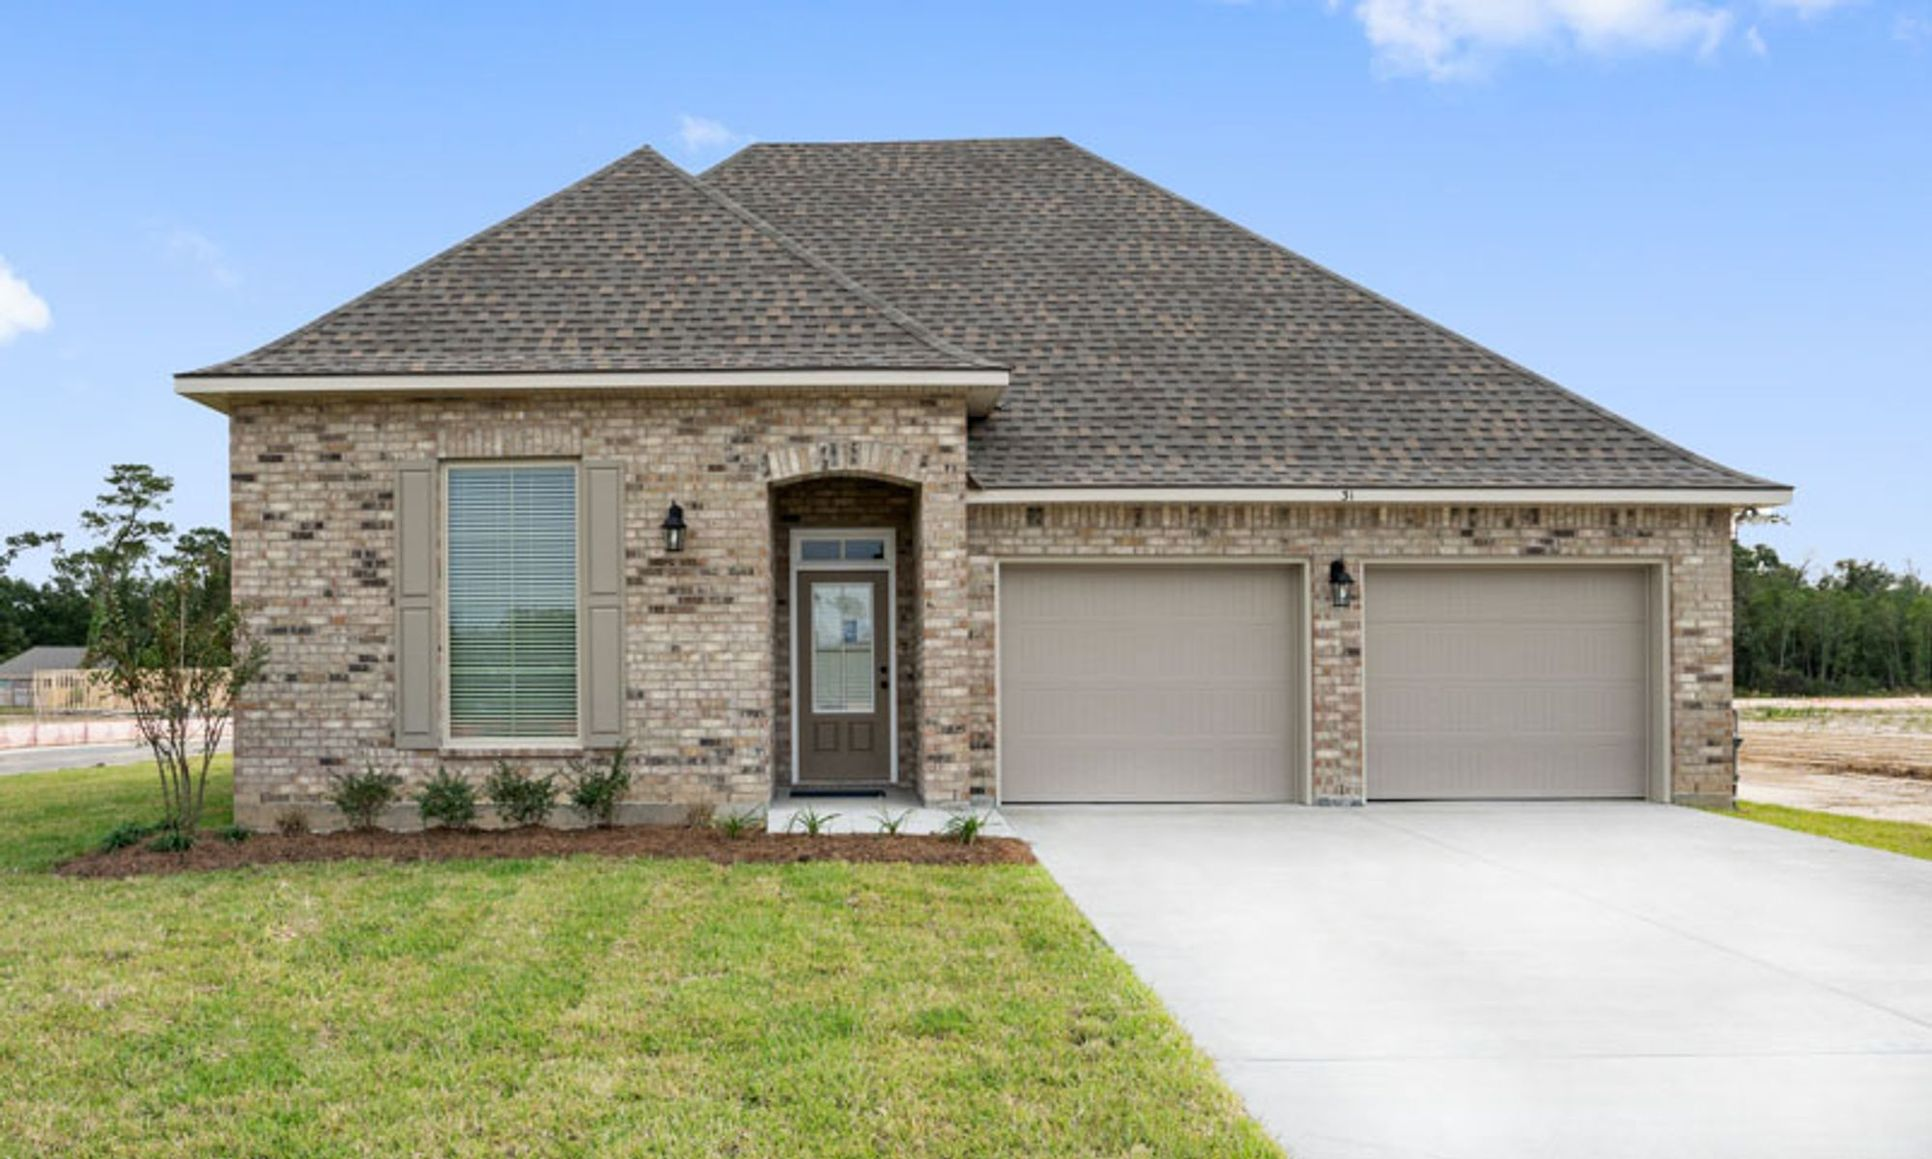 new construction homes in monroe la by dsld homes:Maple Creek Community Photos - Violet III B Floor Plan - DSLD Homes